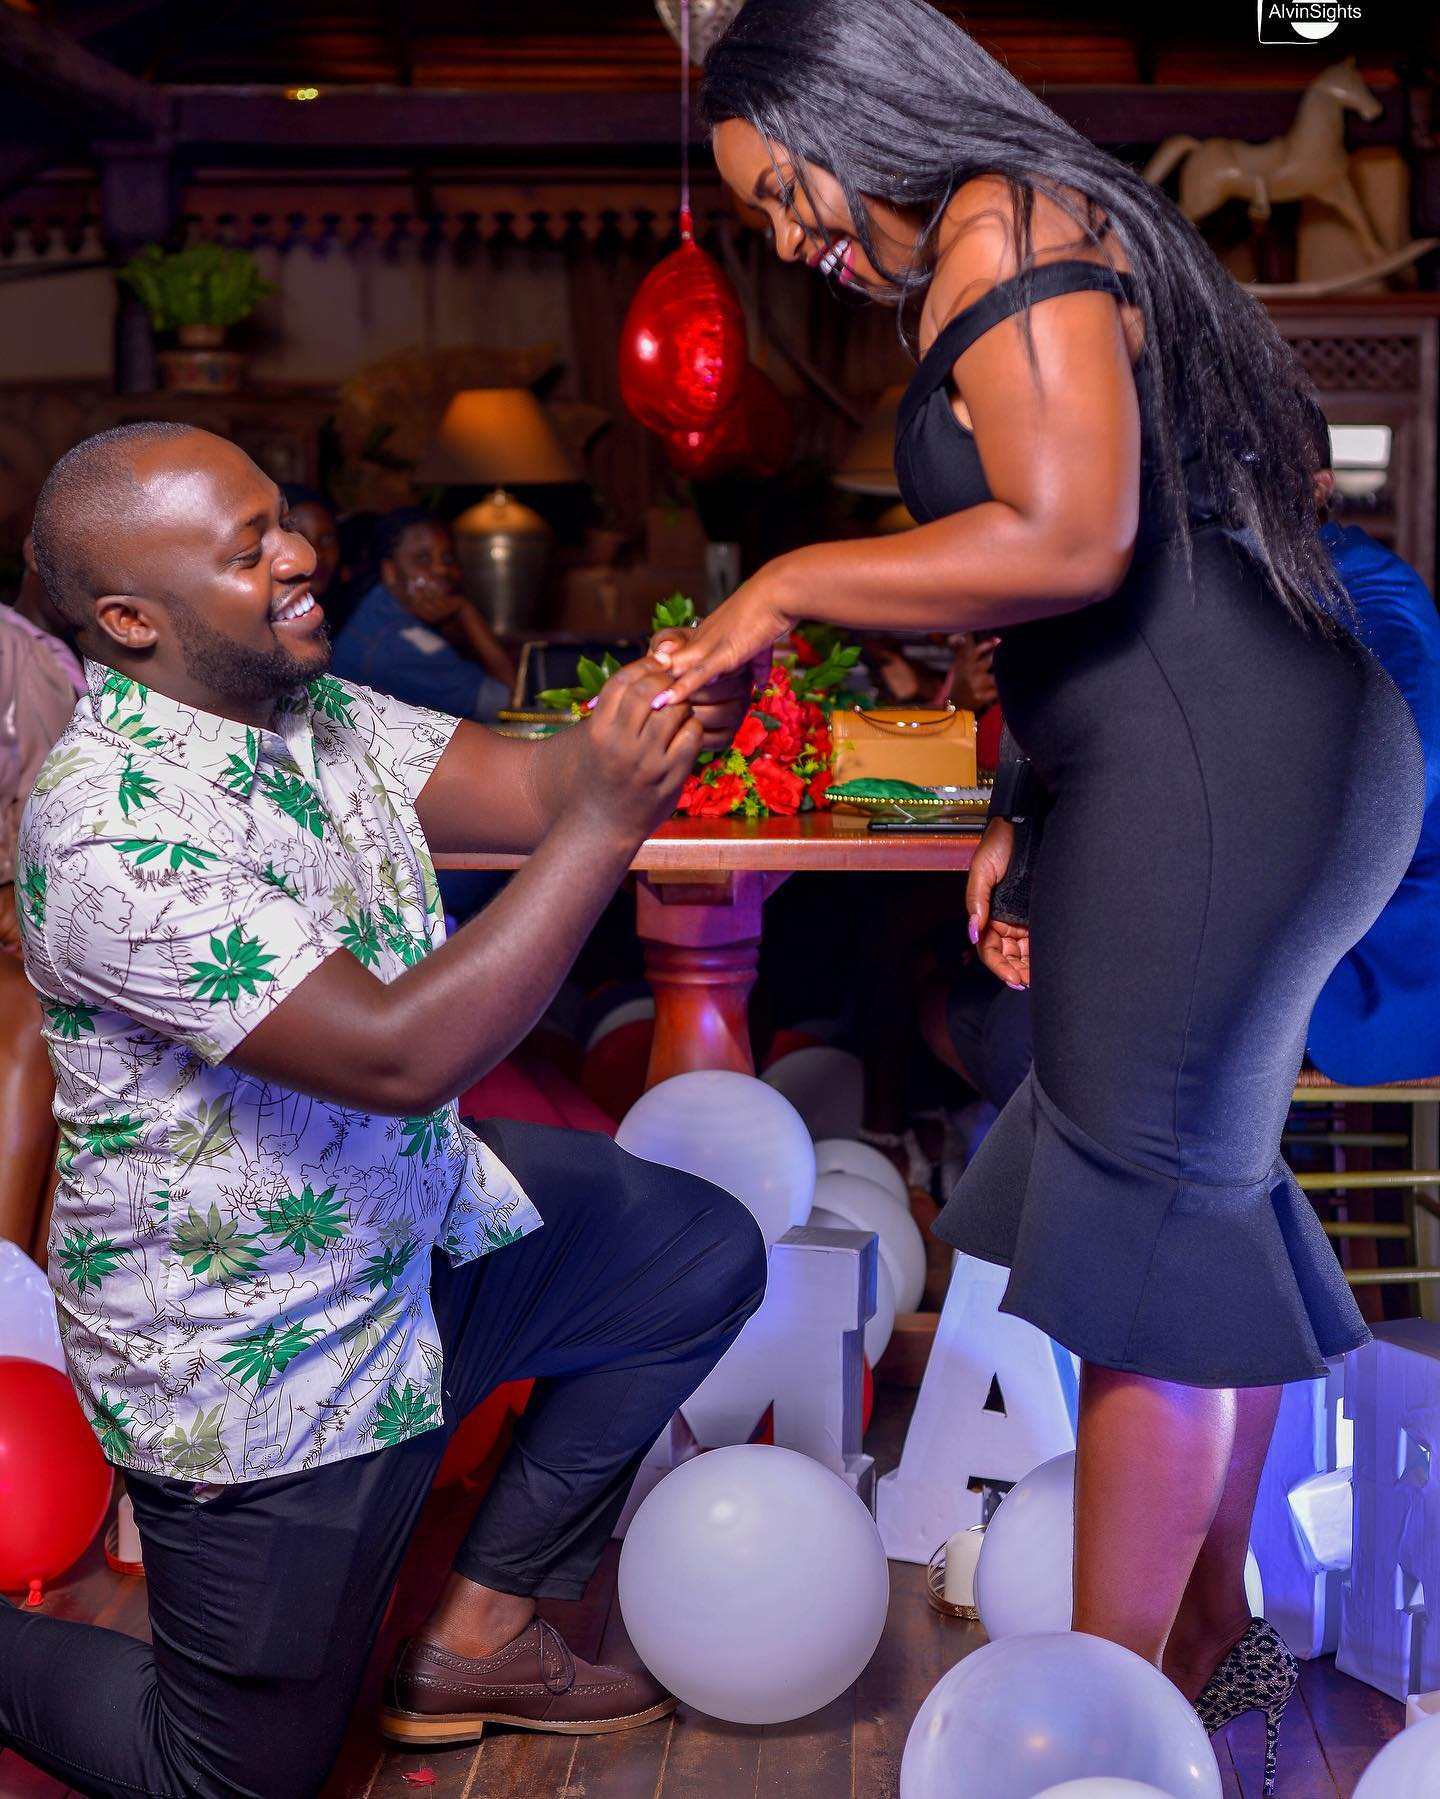 Beta on his knees as he proposes to girlfriend